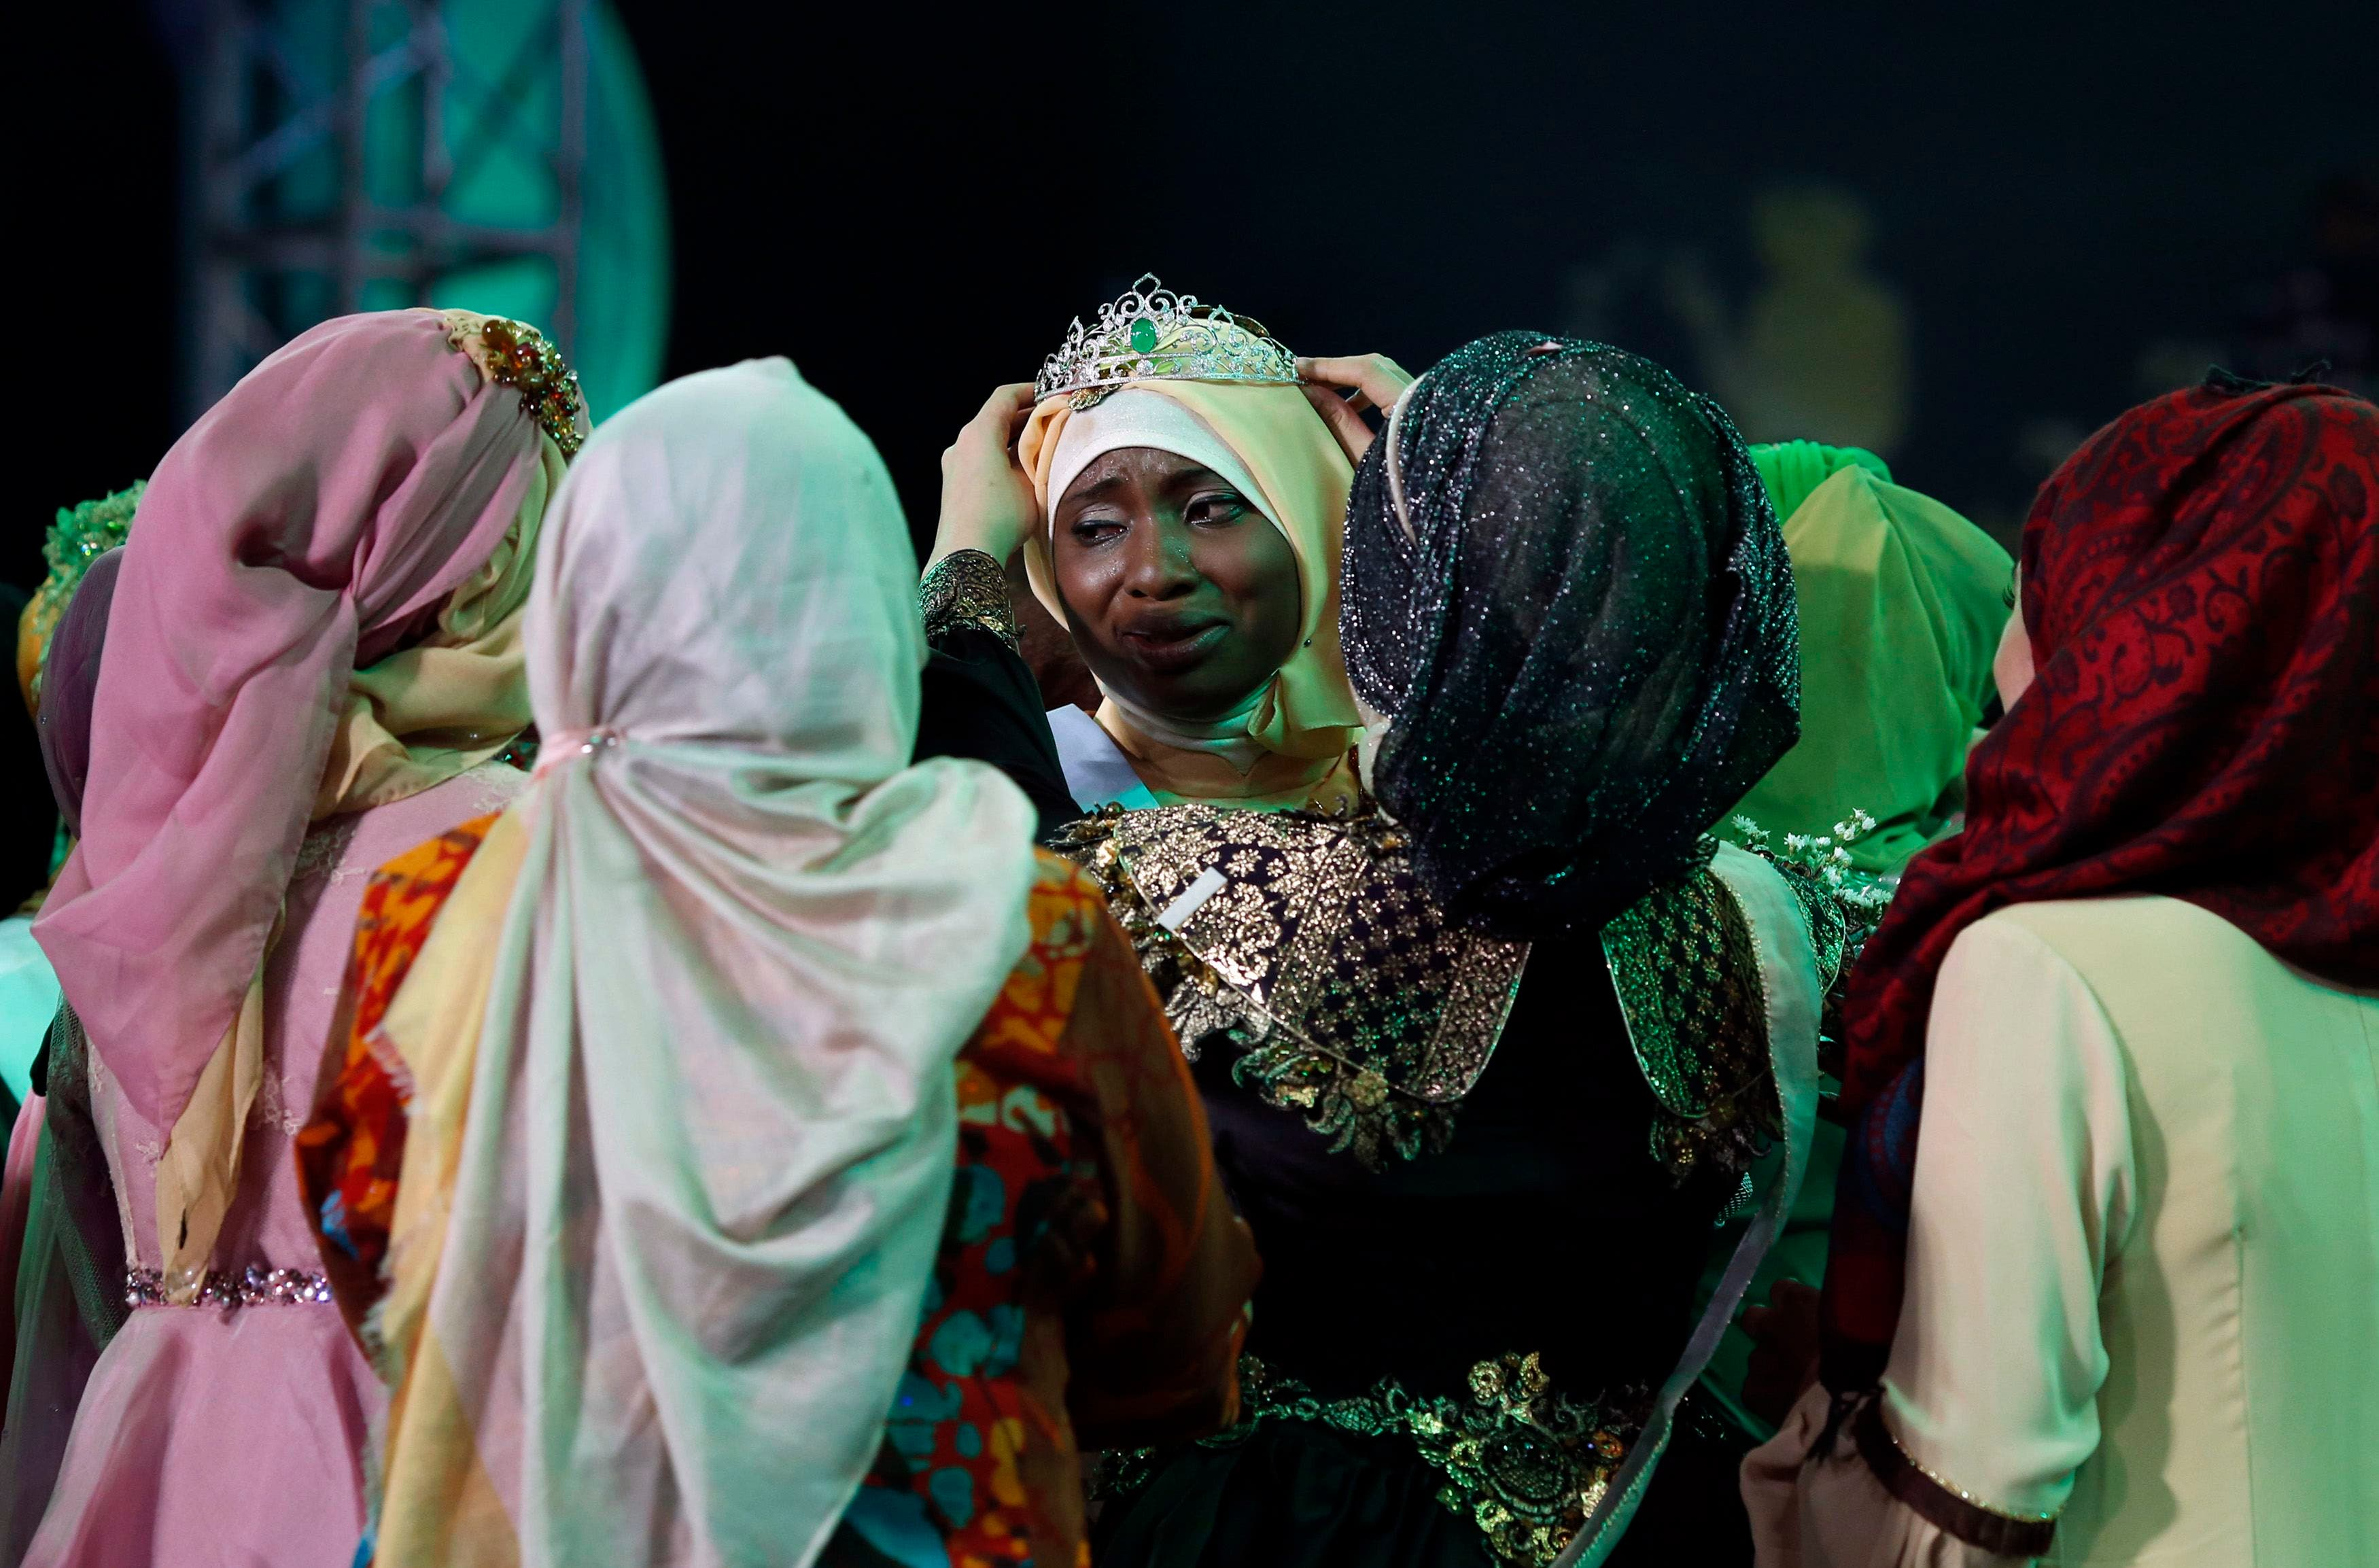 Nigerian Obabiyi Aishah Ajibola (C) is congratulated by fellow finalists after being named World Muslimah 2013 during the third Annual Award of World Muslimah in Jakarta Sept. 18, 2013. (Reuters)